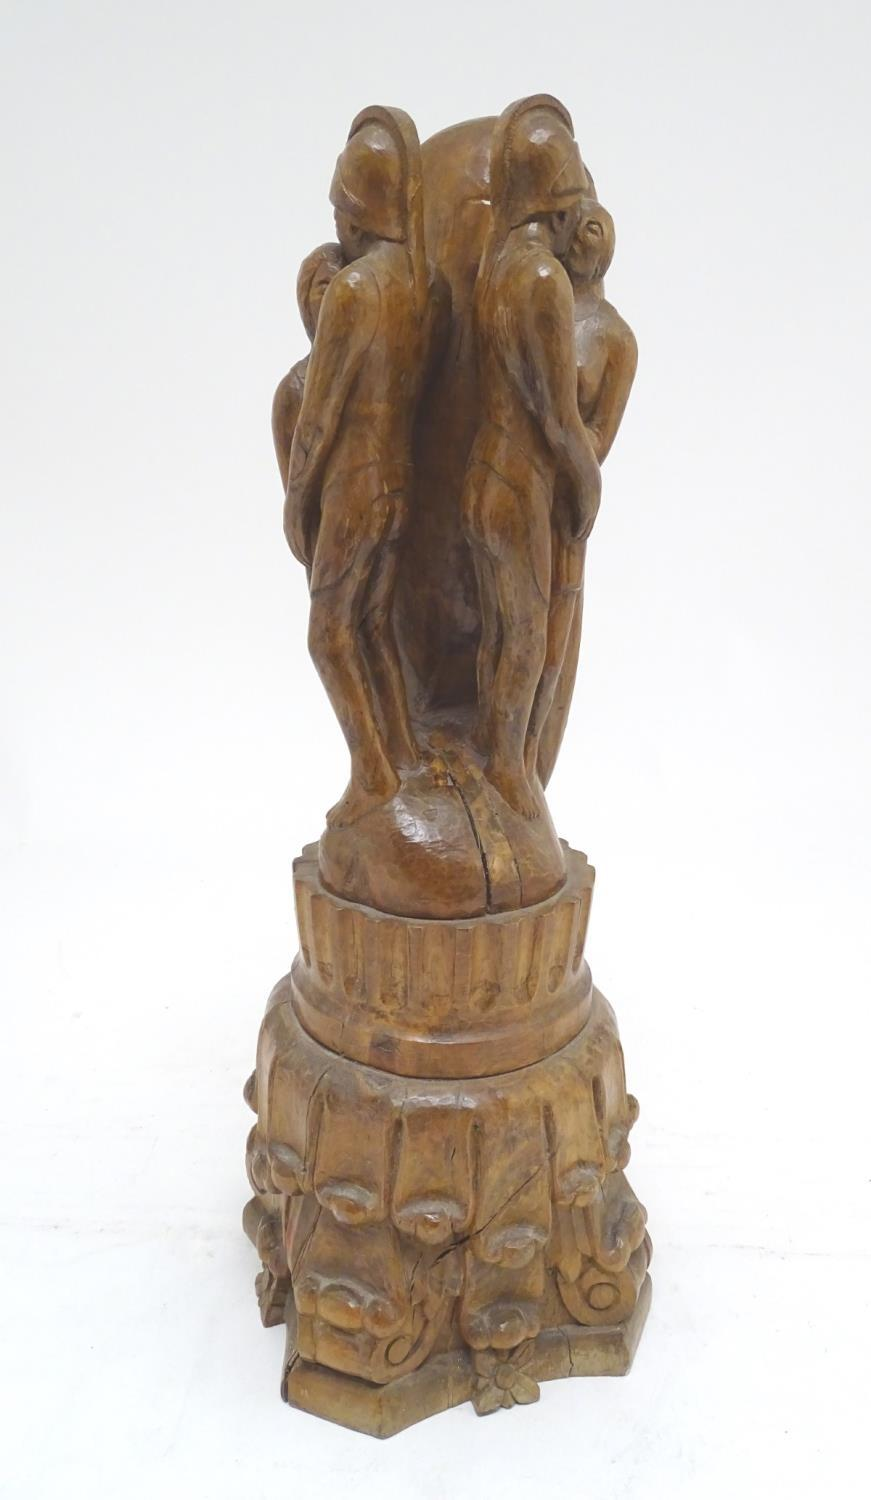 A 20thC carved wooden sculpture titled Tragic Muse to base, monogrammed TD and dated 1971 to side. - Image 5 of 17